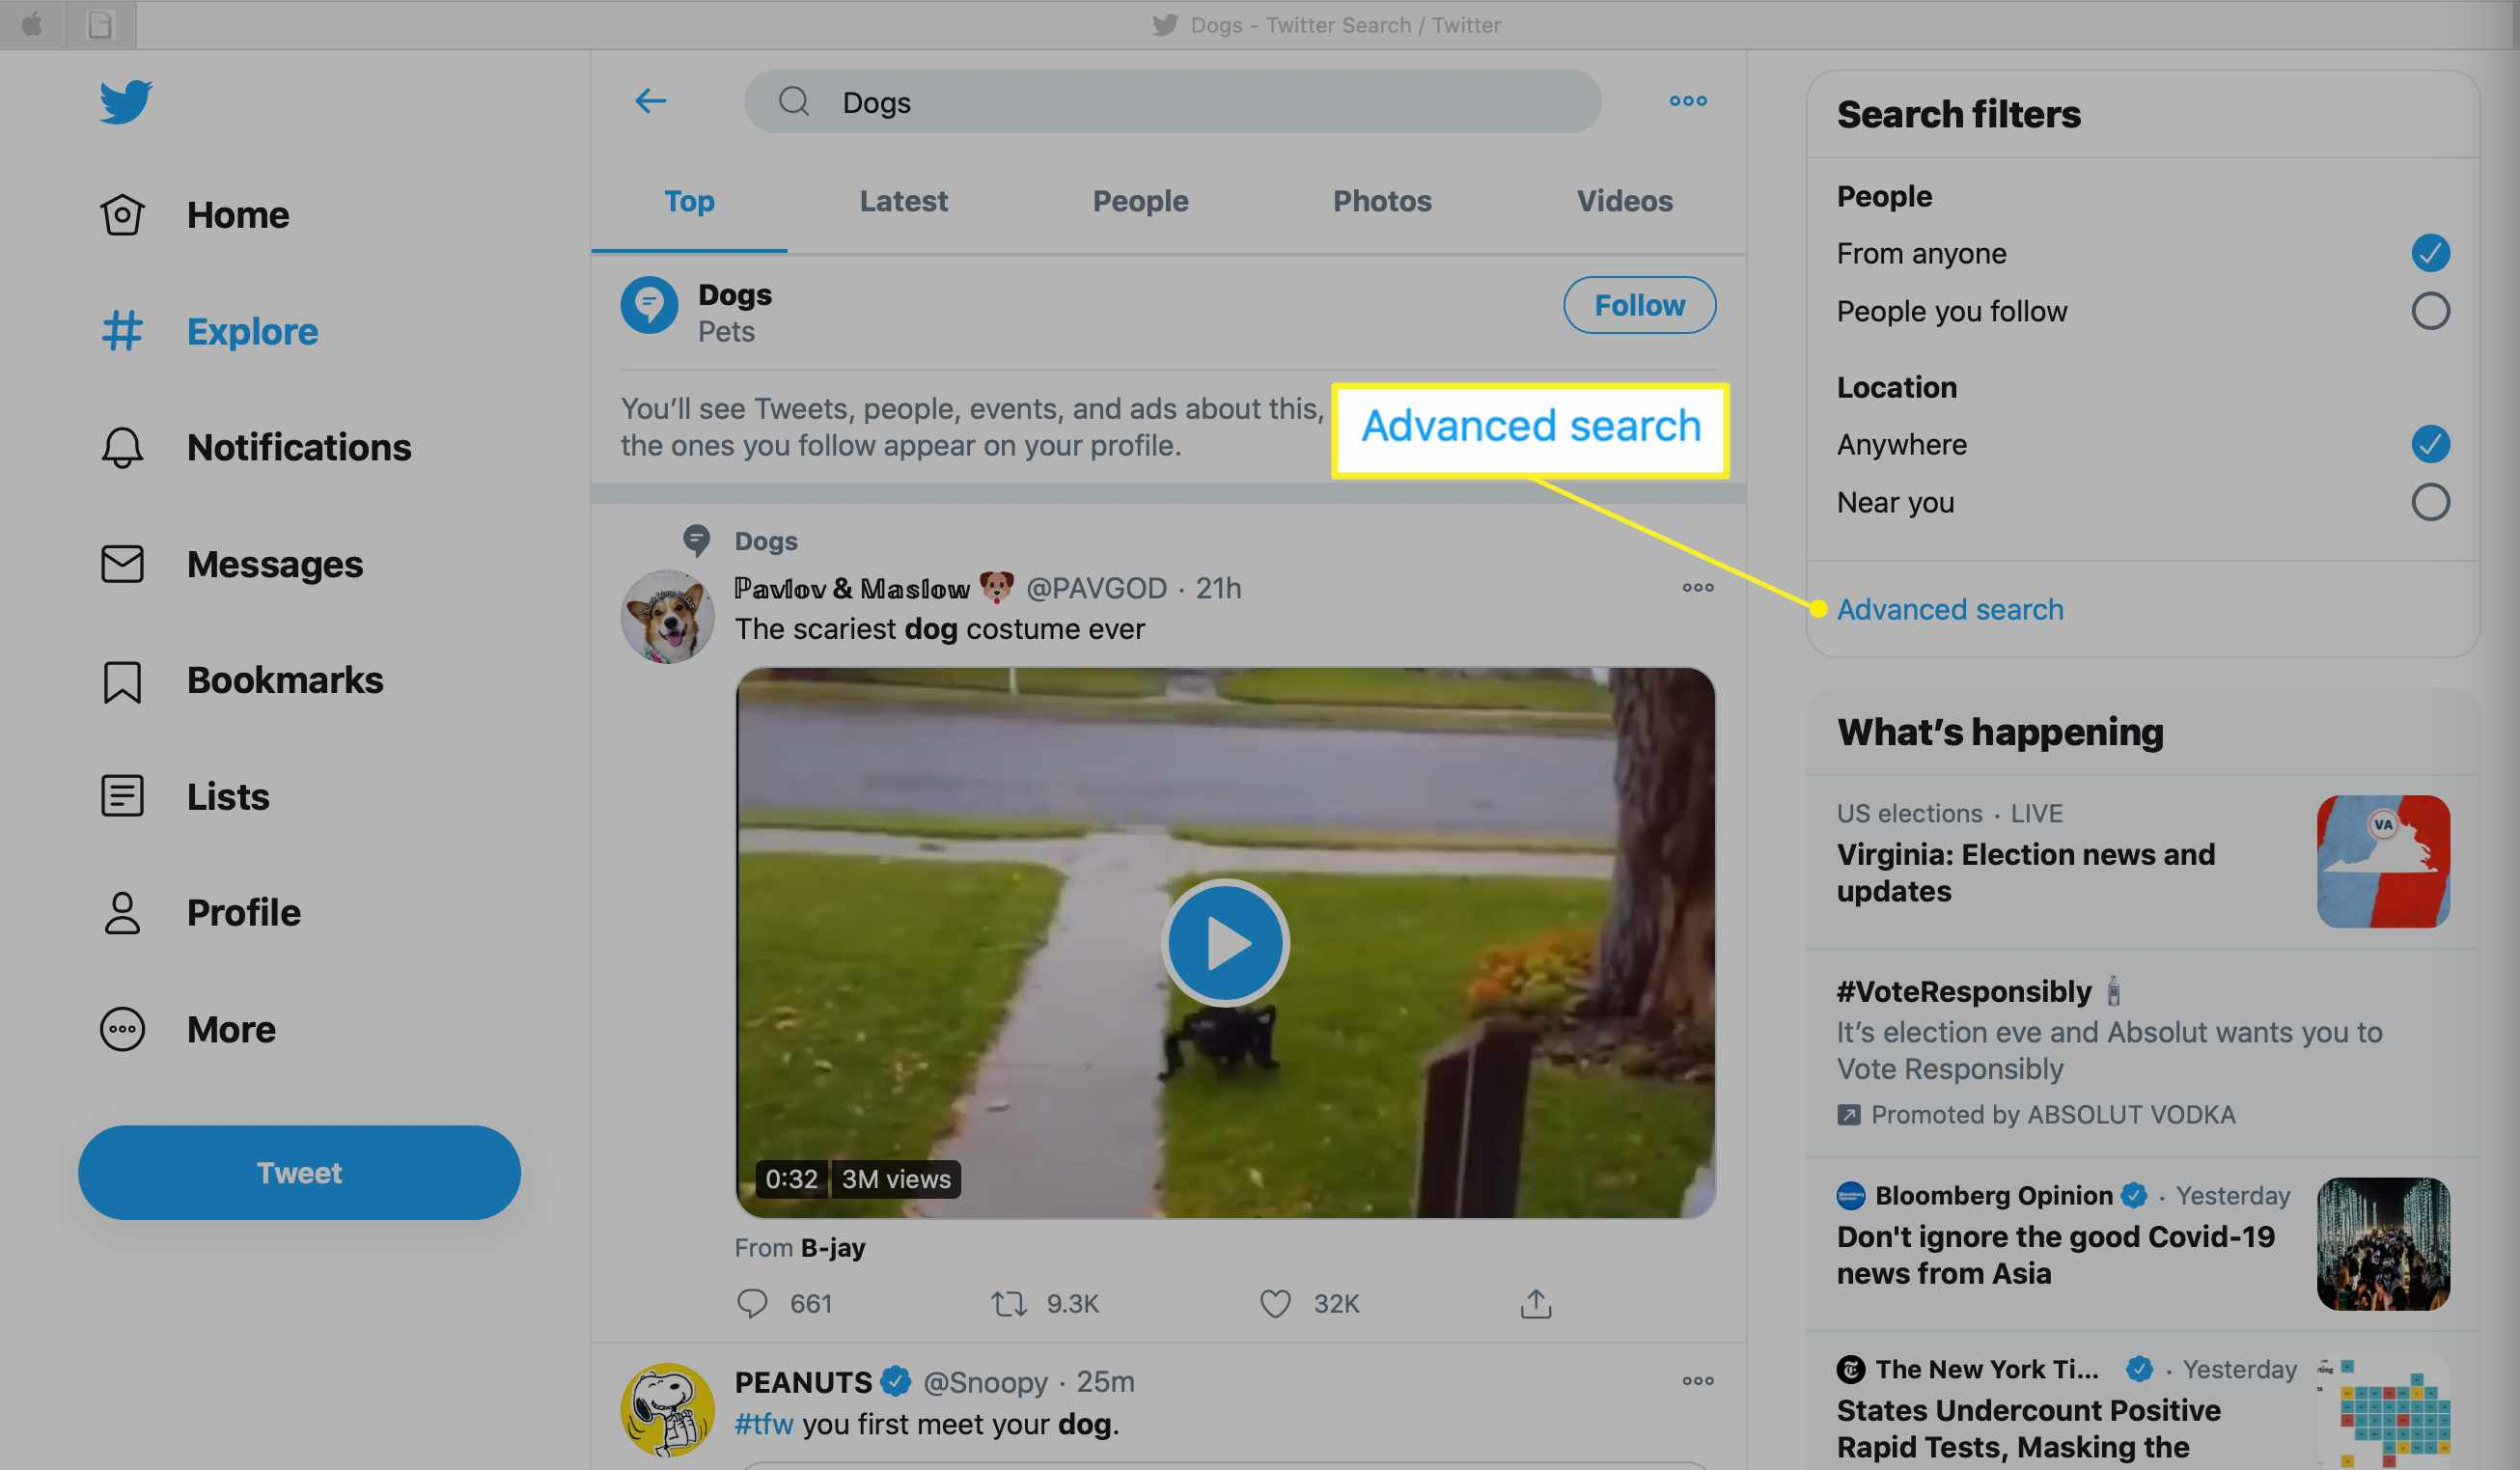 Twitter Advanced search link under Search filters